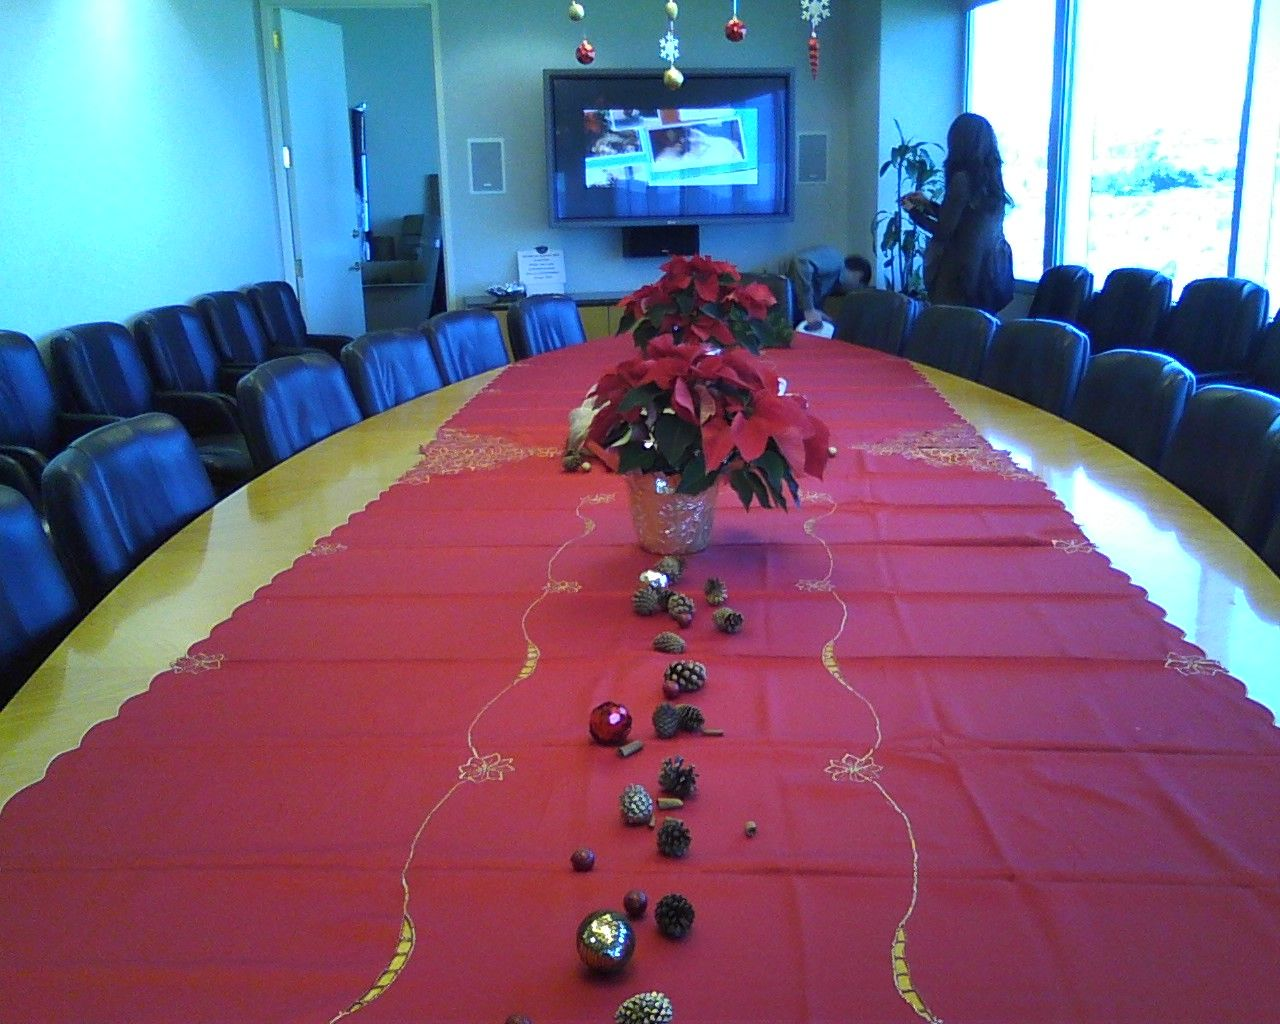 Holiday Party Decor Ideas Part - 44: Decorating The Boardroom For Our Office Holiday Party